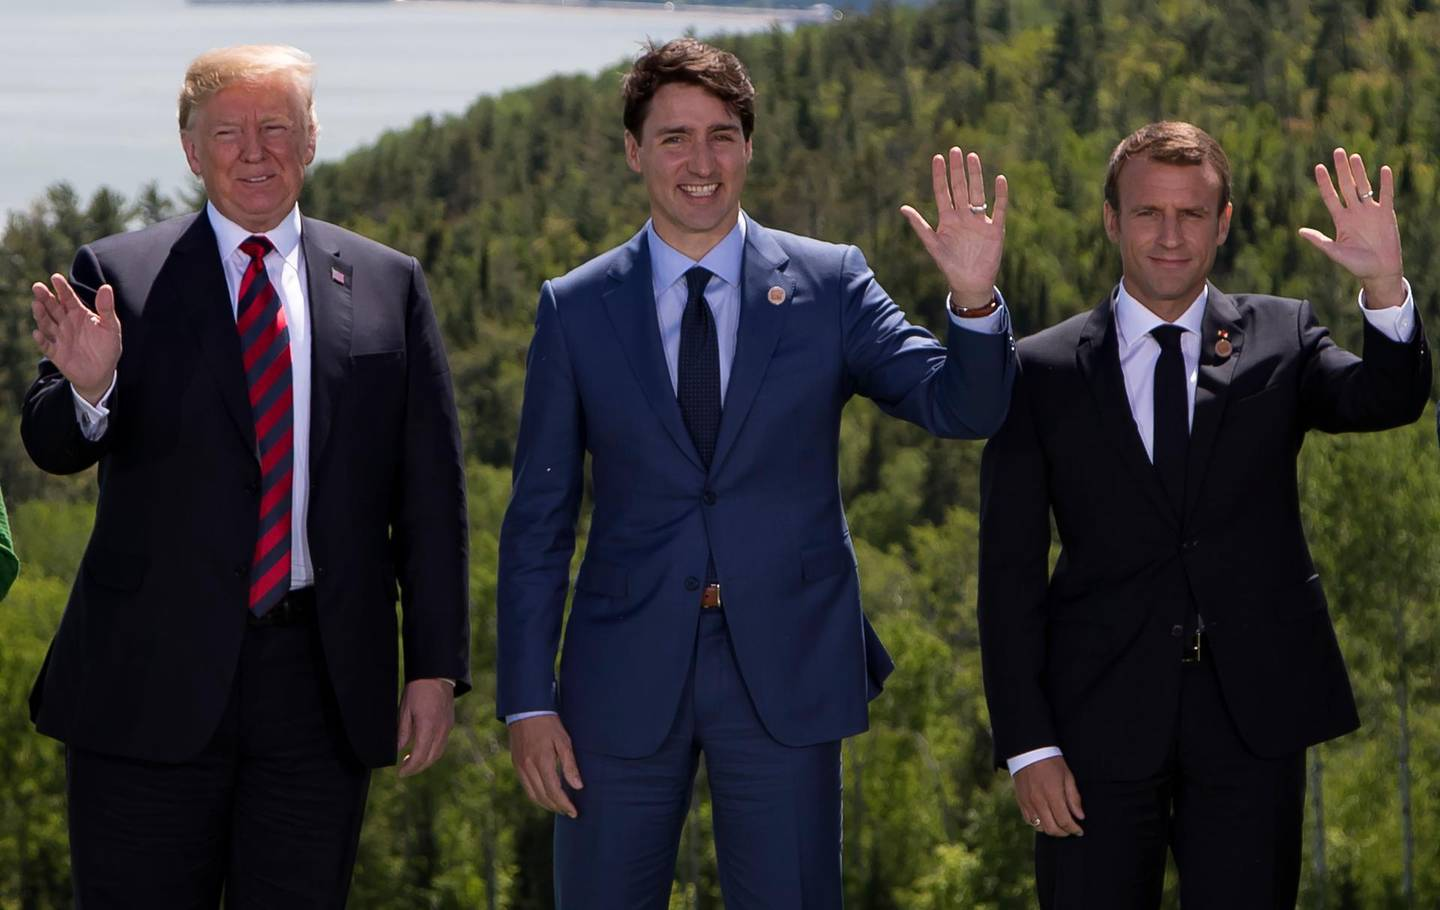 epaselect epa06794975 (L-R) US President Donald Trump, Canadian prime minister Justin Trudeau and French president Emmanuel Macron wave during the family photo at the G7 summit in Charlevoix in Canada, 08 June 2018. The G7 Summit runs from 08 to 09 June in Charlevoix, Canada.  EPA/IAN LANGSDON/POOL MAXPPP OUT